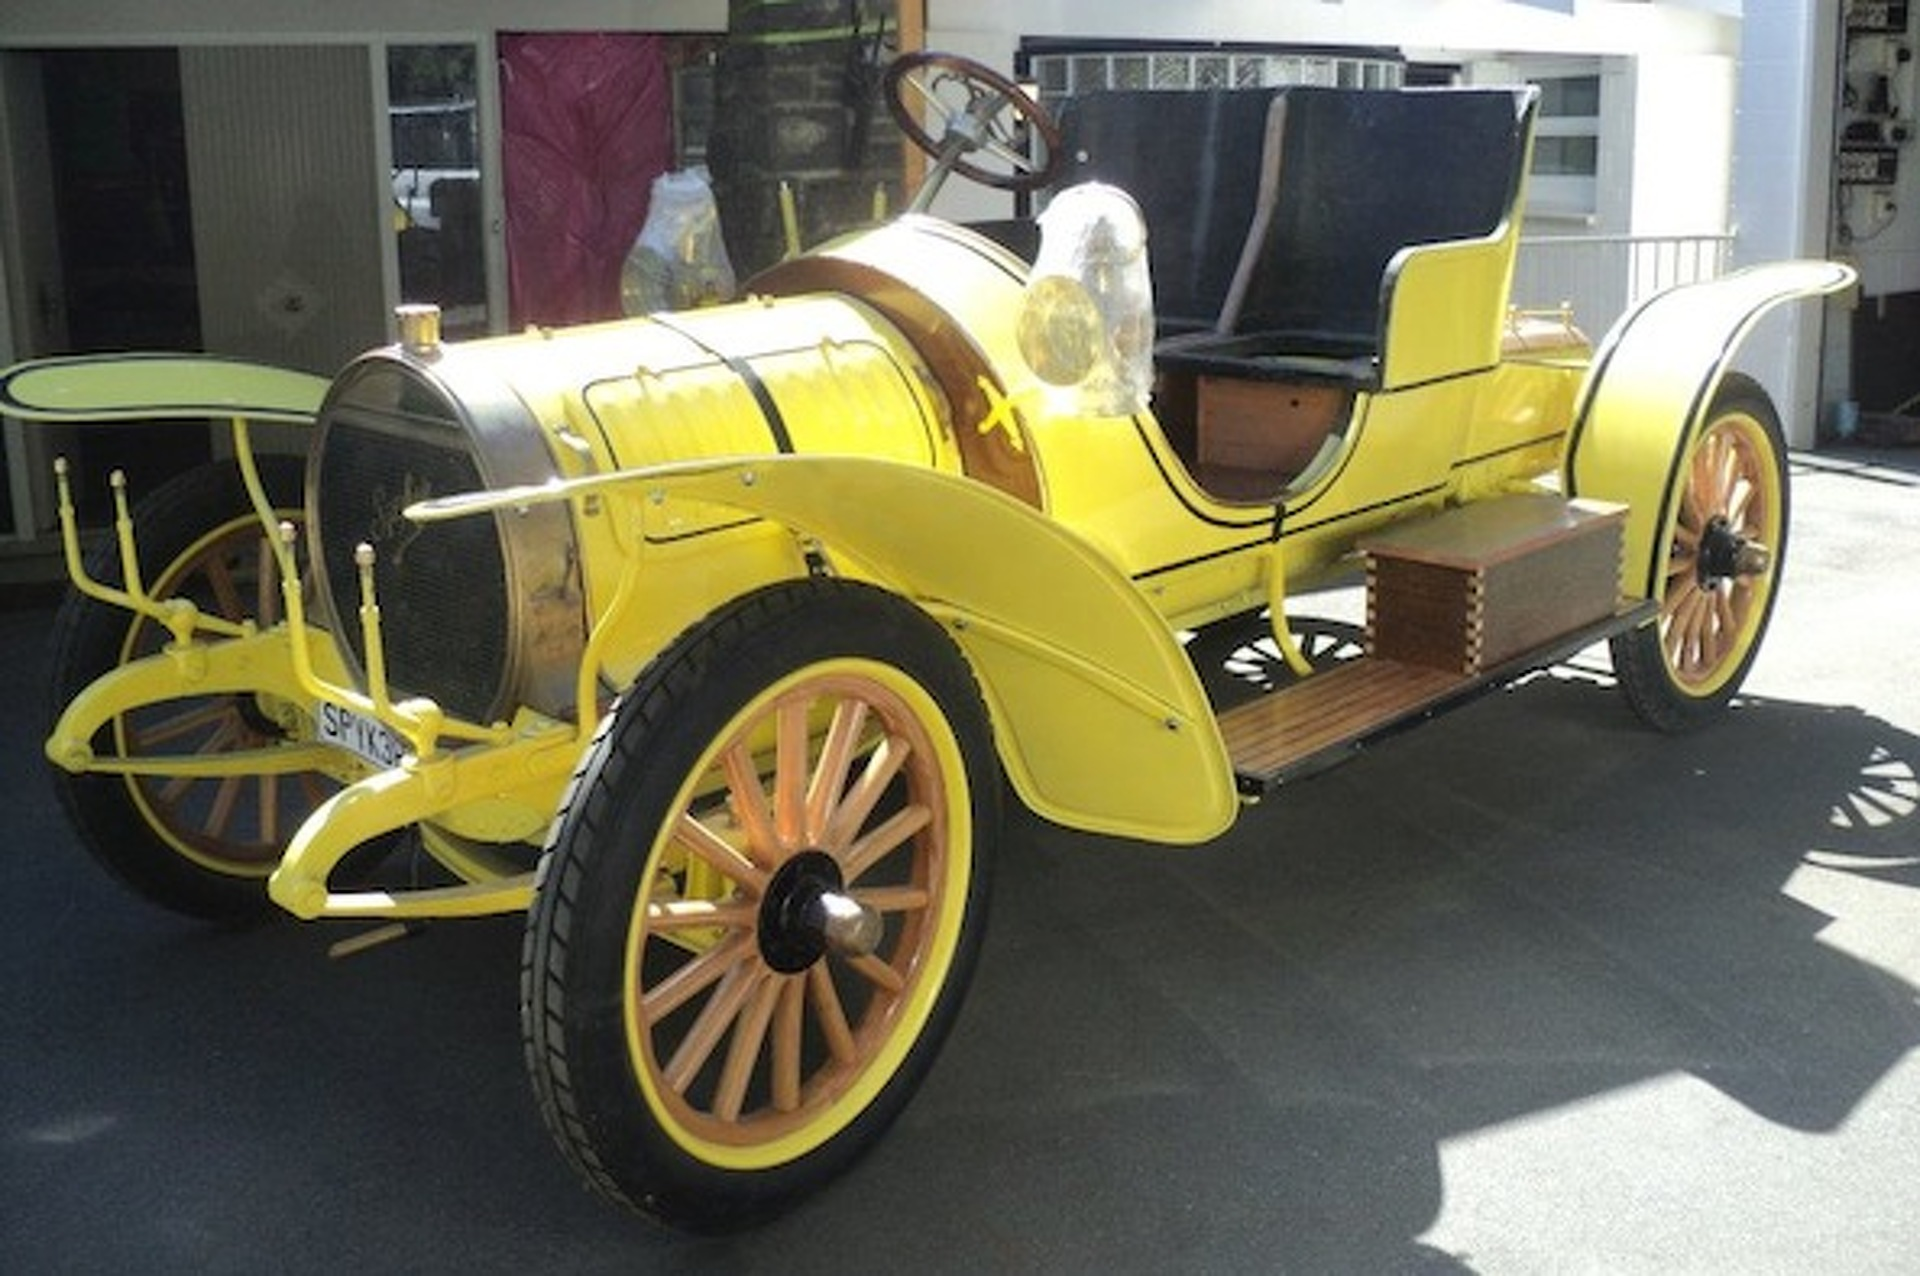 This Guy Restored a 1907 Spyker From the Ground Up